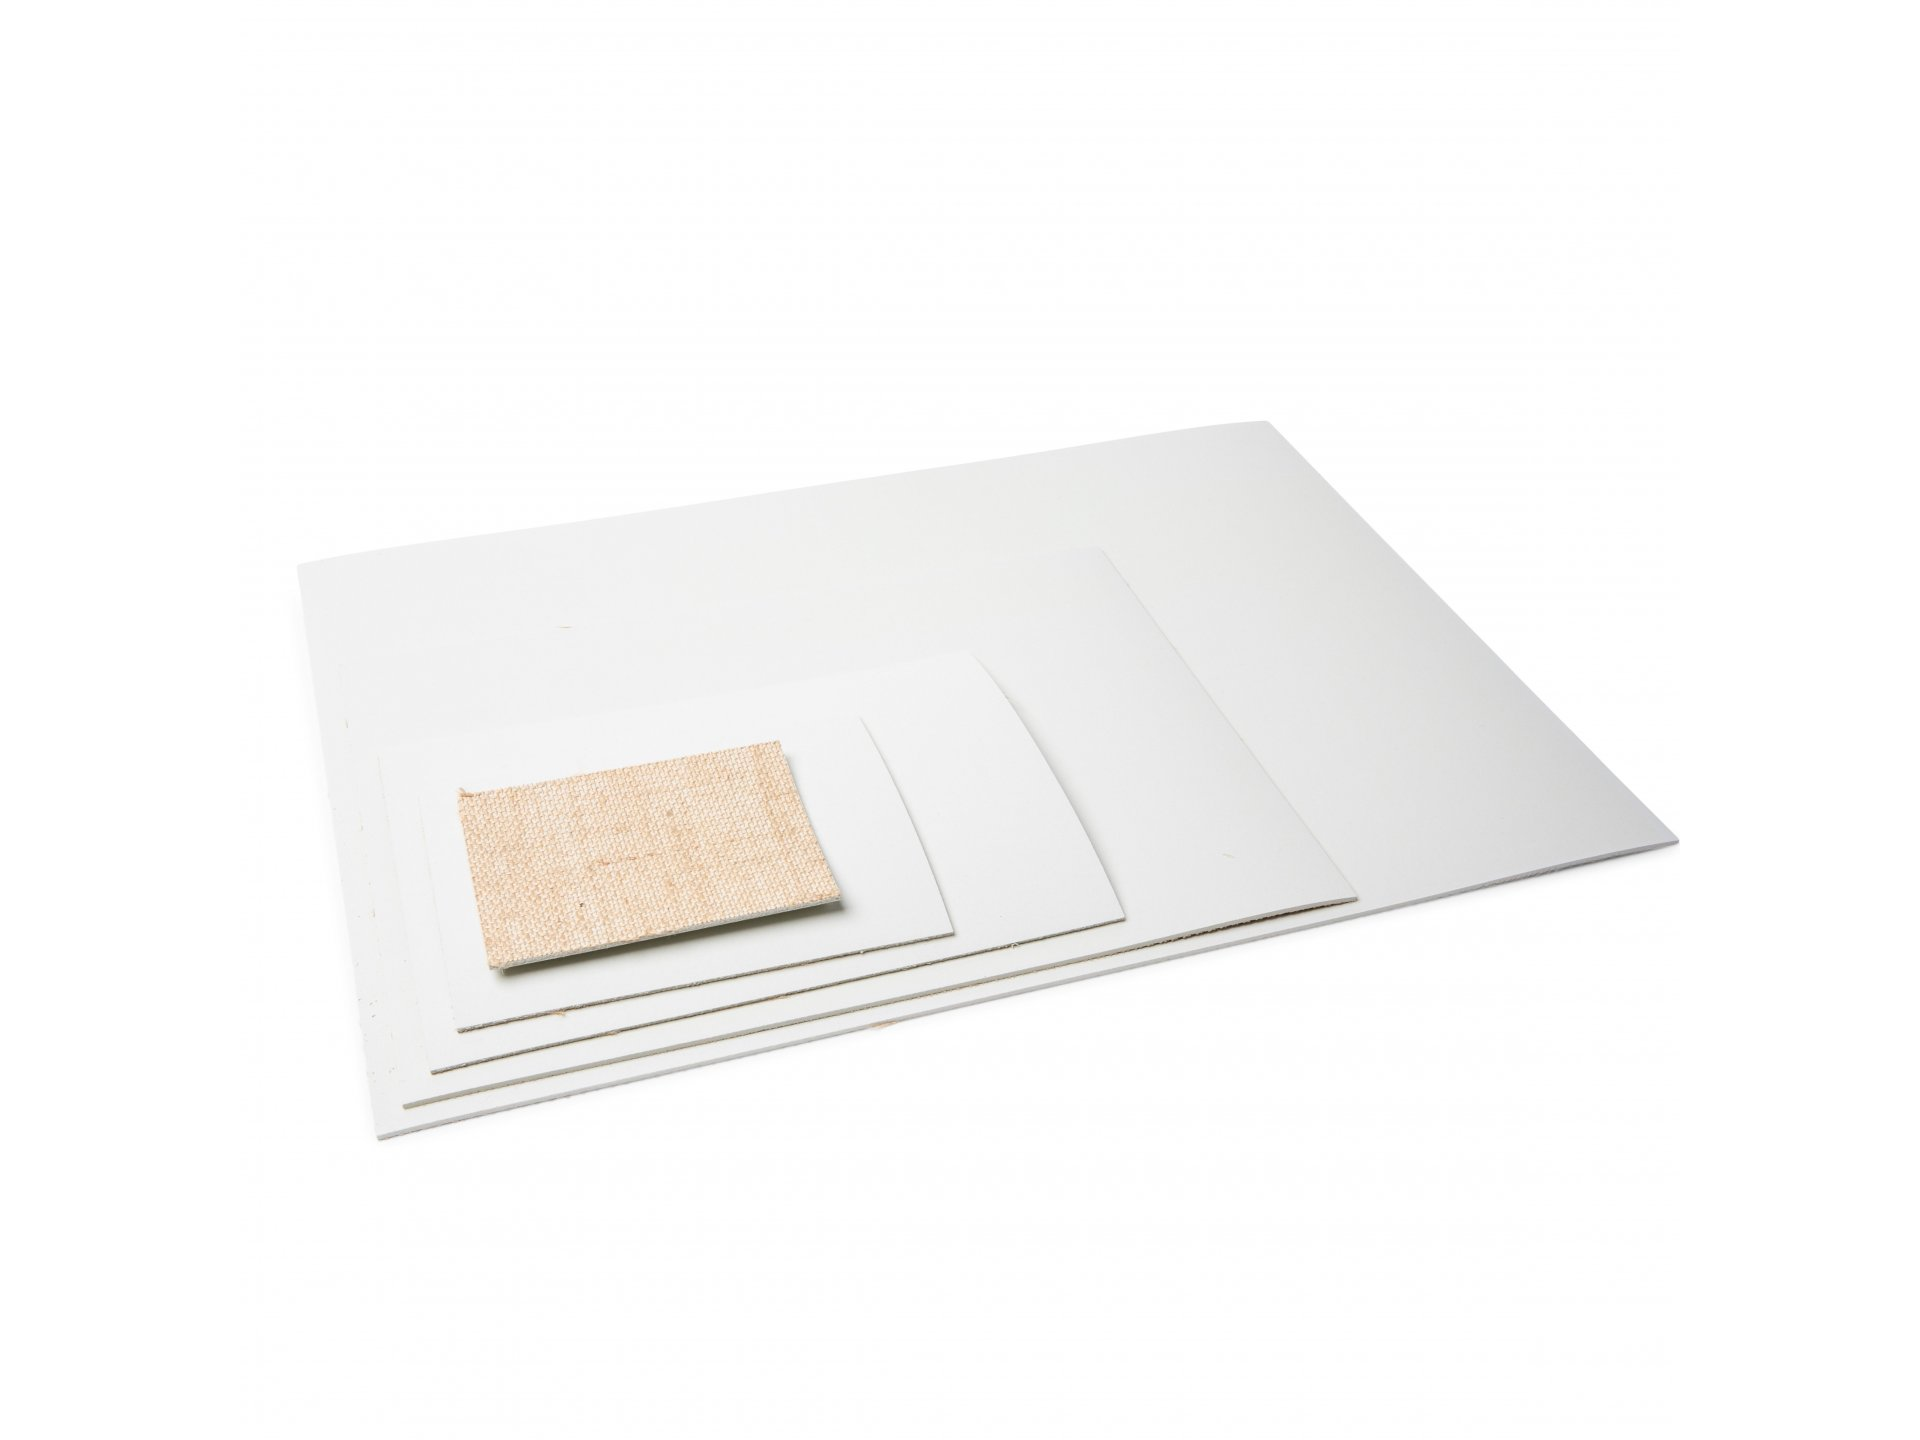 Buy Dlw Linoleum Sheets Online At Modulor Online Shop